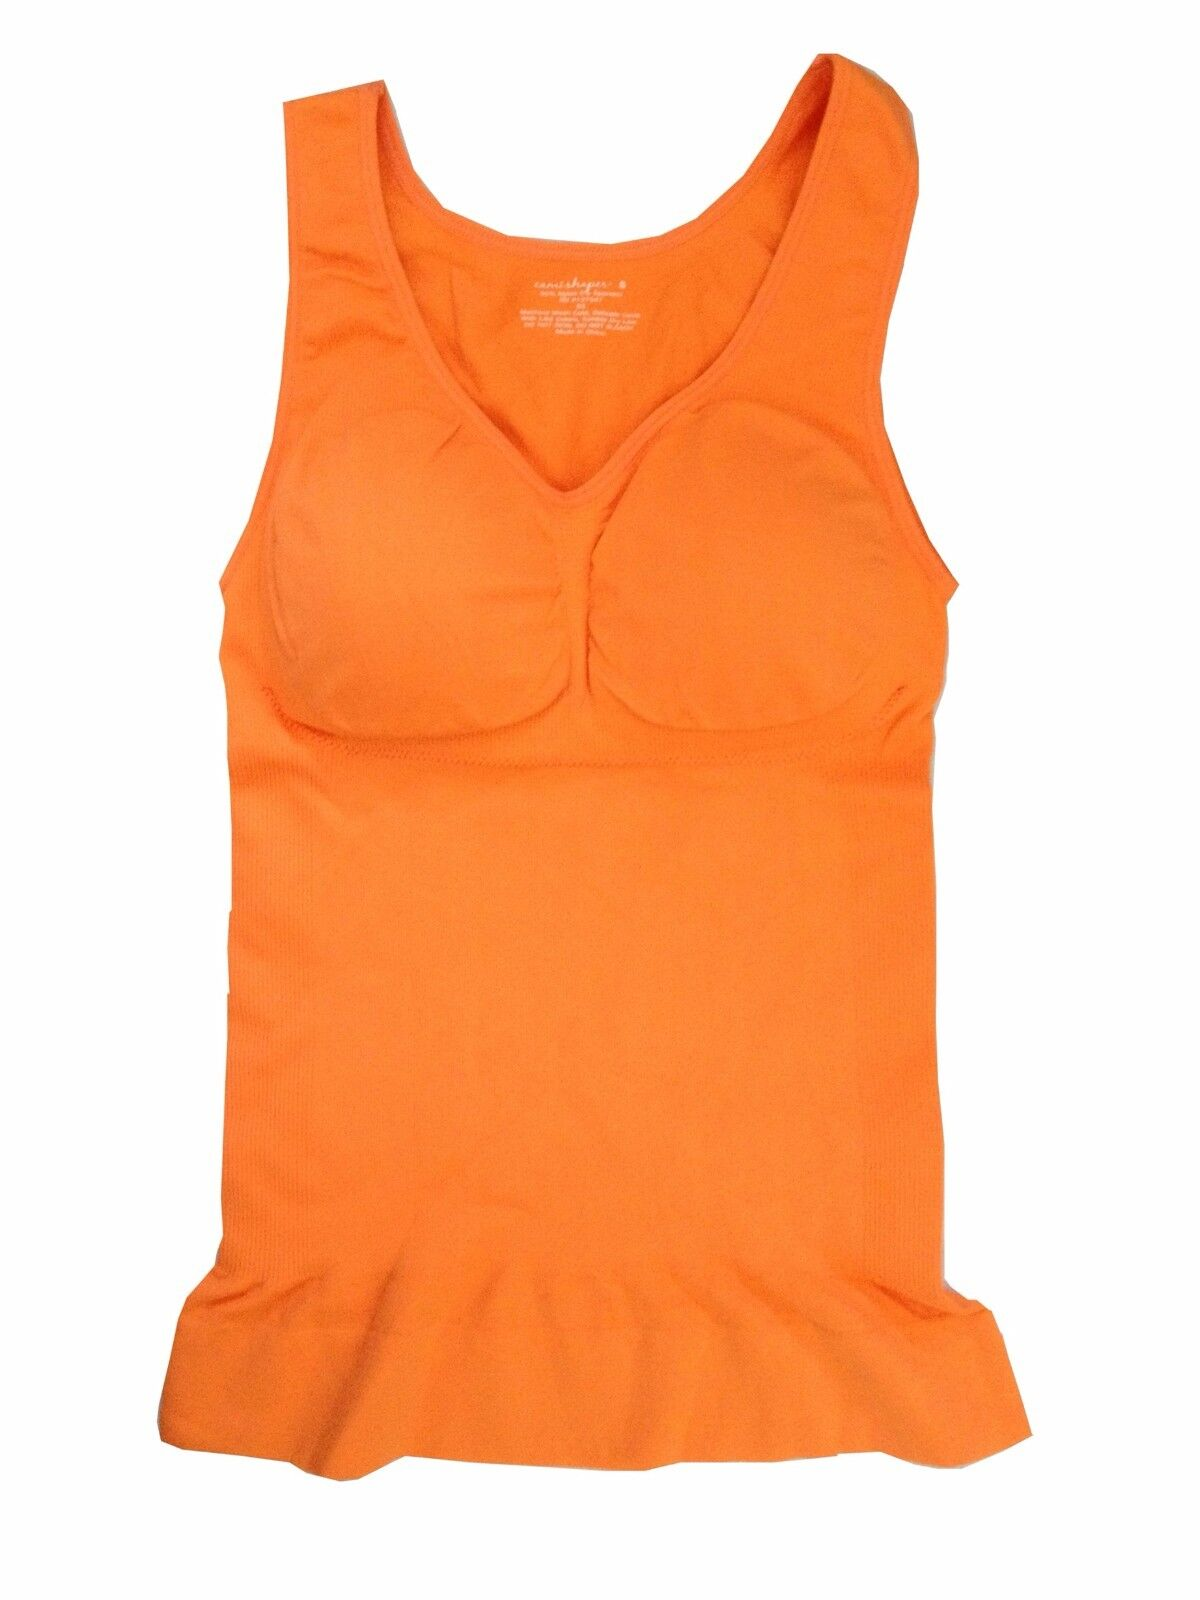 Genie 3 in 1 Cami Shaper w// Built-in Bra Seamless Shaping Camisole 3 Camisoles